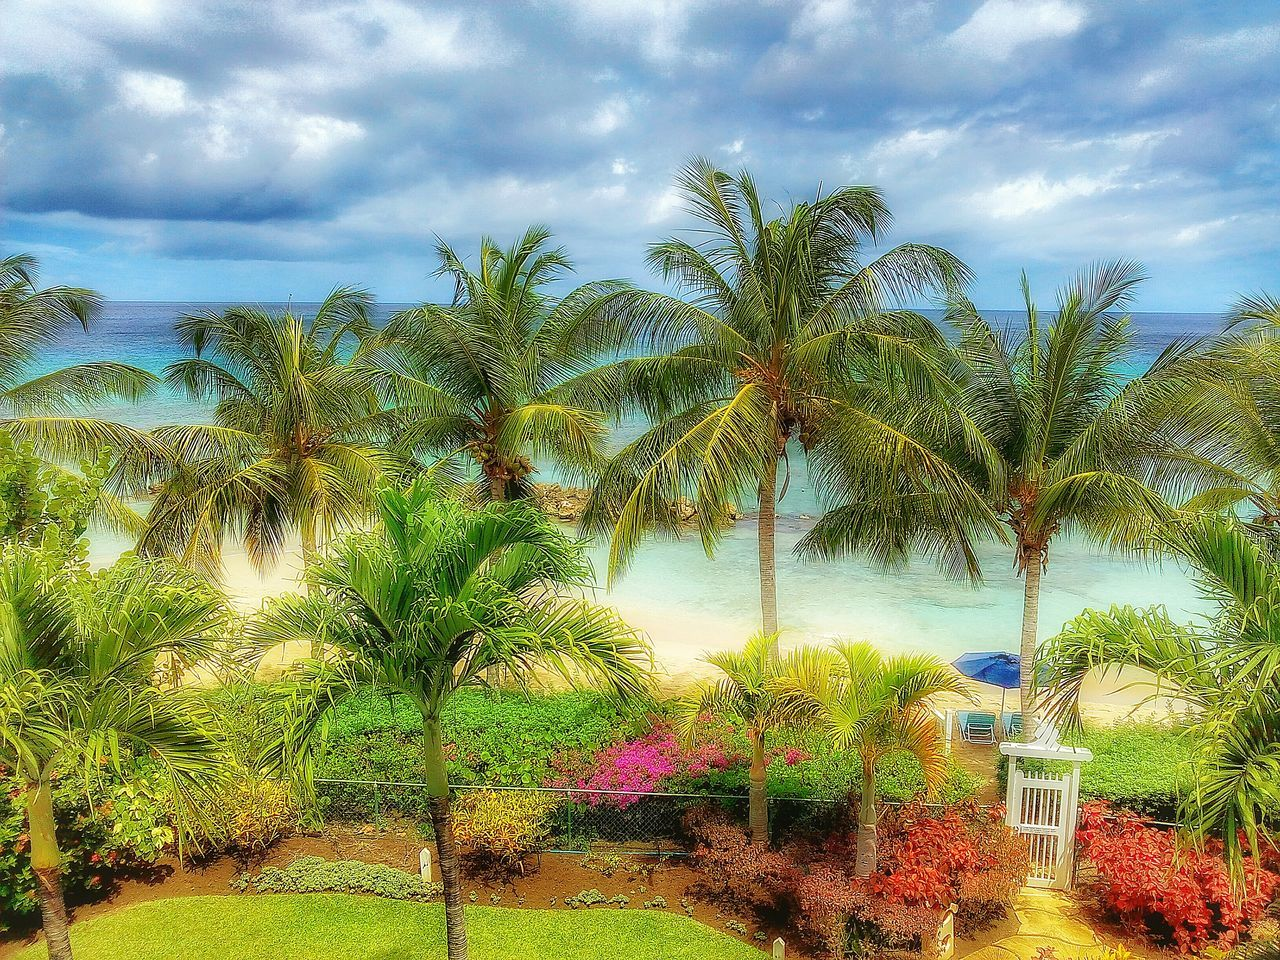 palm tree, sky, tree, cloud - sky, tranquility, tranquil scene, nature, water, scenics, beauty in nature, outdoors, sea, day, no people, growth, vacations, swimming pool, horizon over water